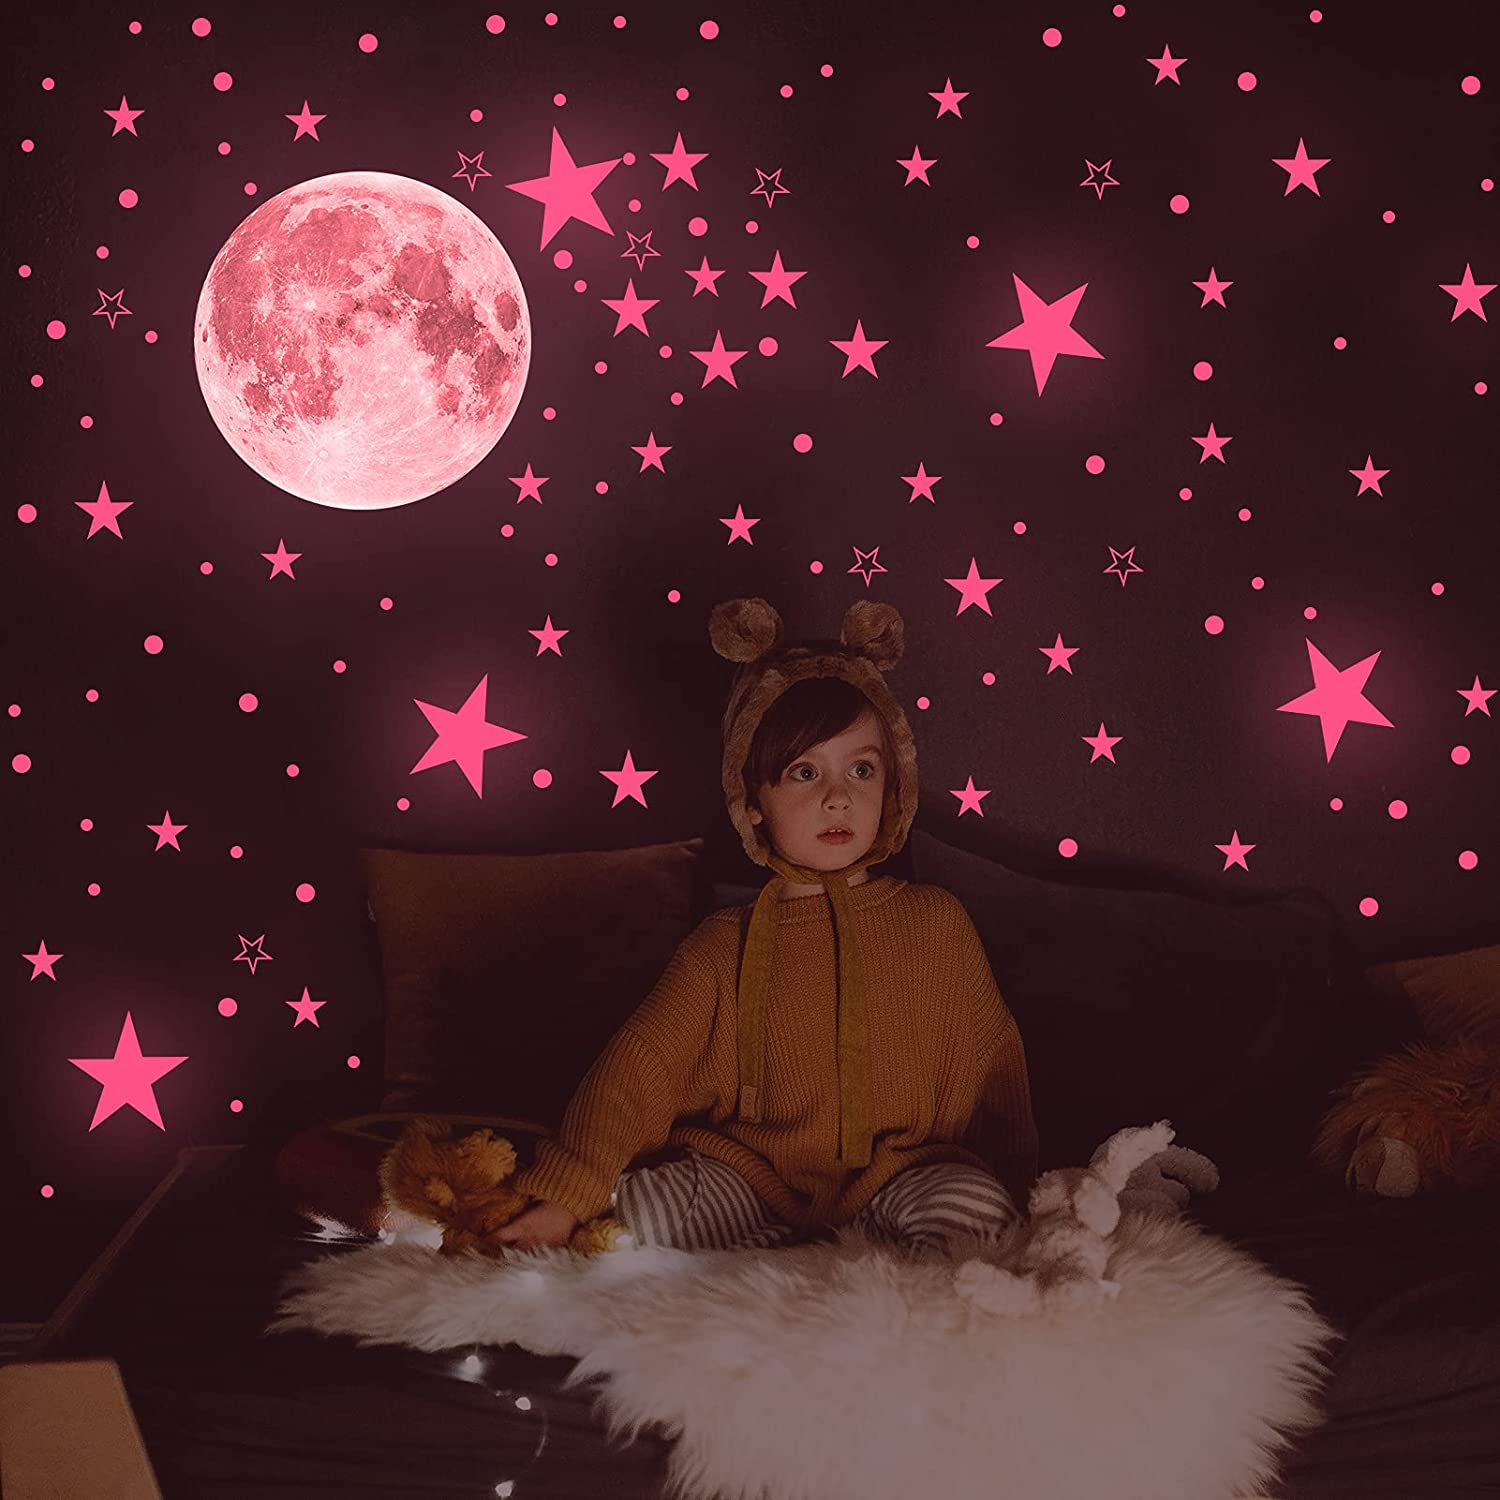 Glow in The Dark Stars for Ceiling - AIRXWILLS Pink Glow in The Dark Star Stickers for Girls , Ceiling Stars for Kids Room Decor, Aesthetic Room Decor.